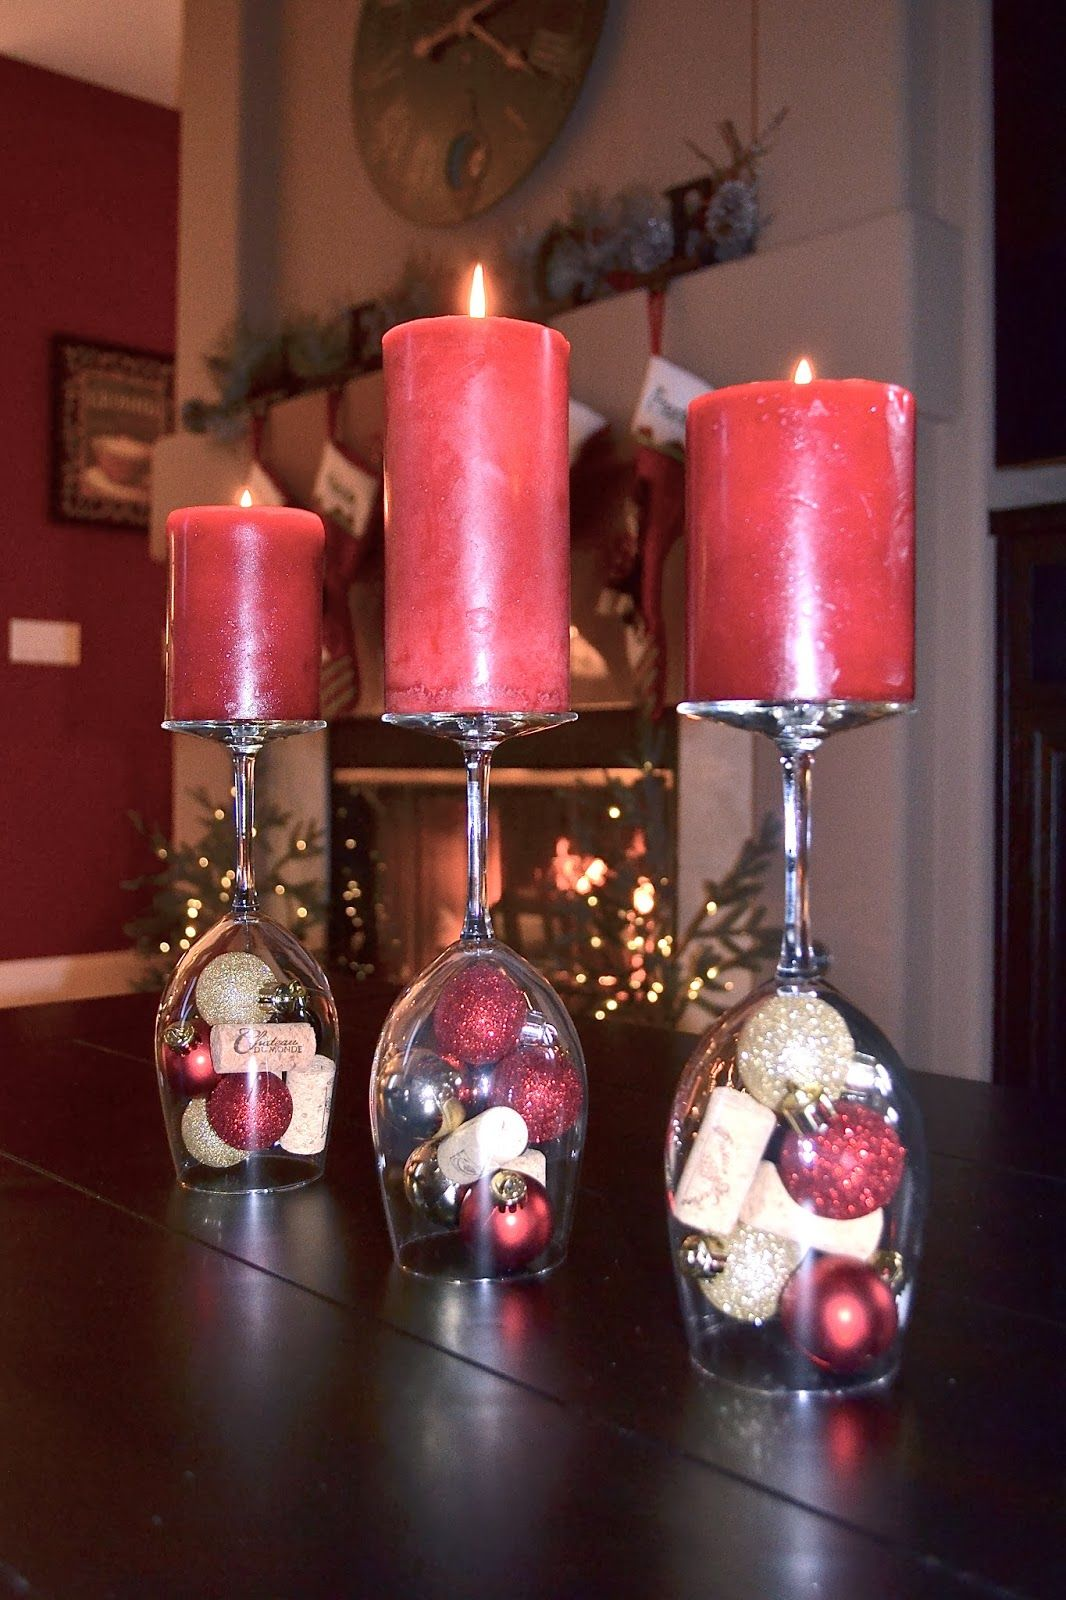 Loveable And Artistic Christmas Table Centerpiece Idea With Reversed Wine Glas Christmas Centerpieces Christmas Table Decorations Christmas Table Centerpieces